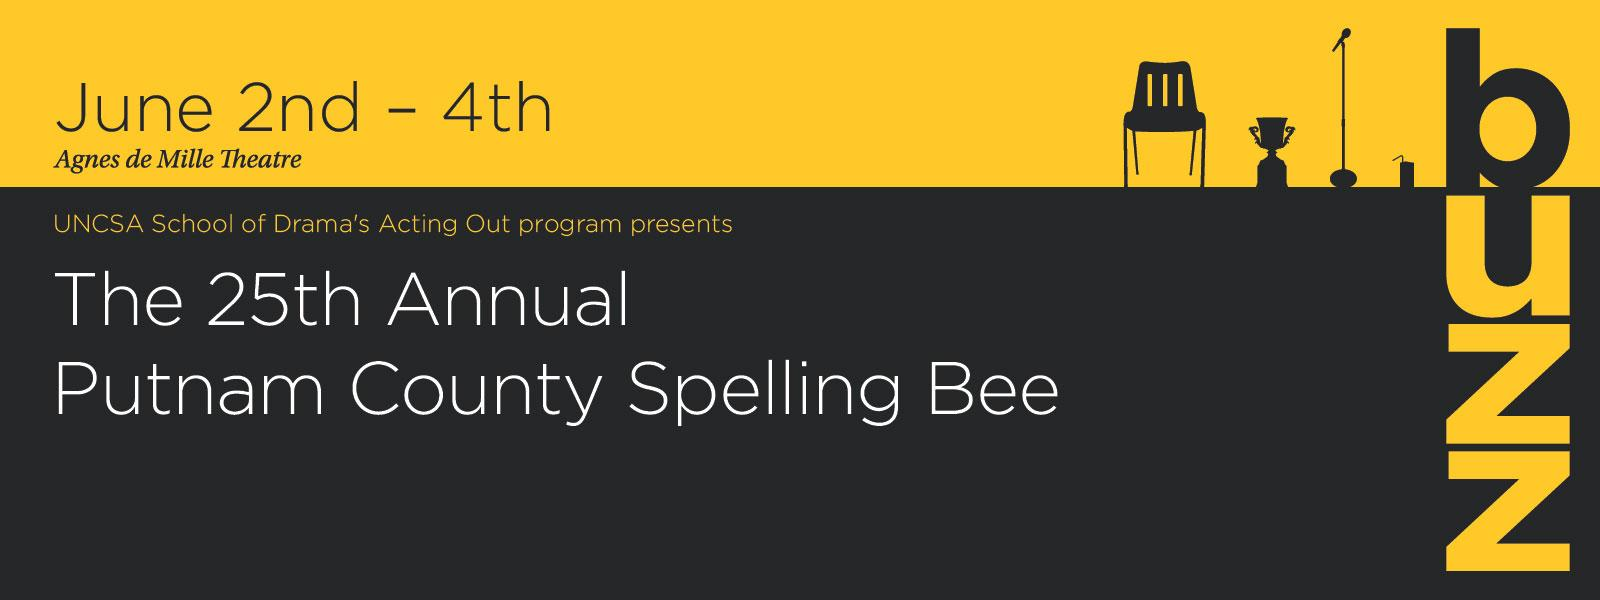 You've never seen a spelling bee this exciting before! >> BUY TICKETS